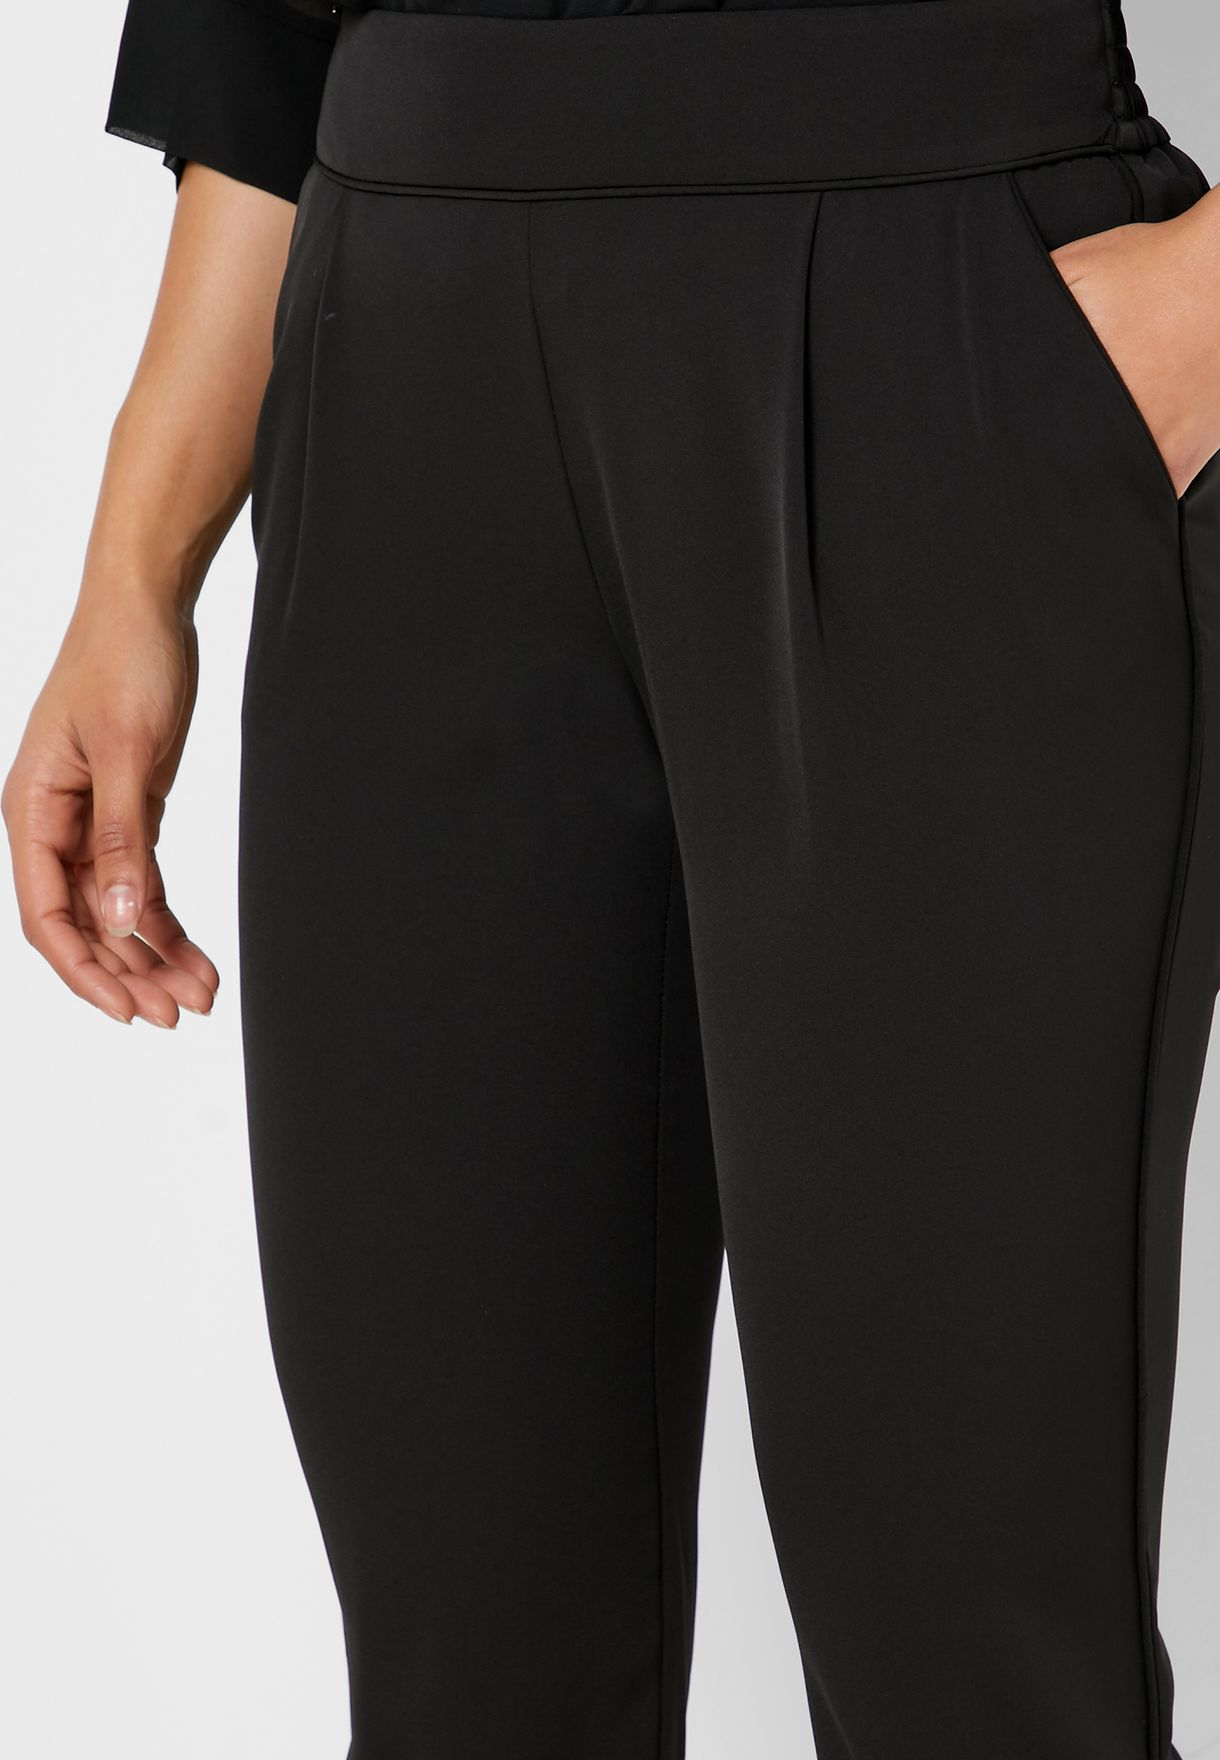 Pleated Ankle Grazer Pants